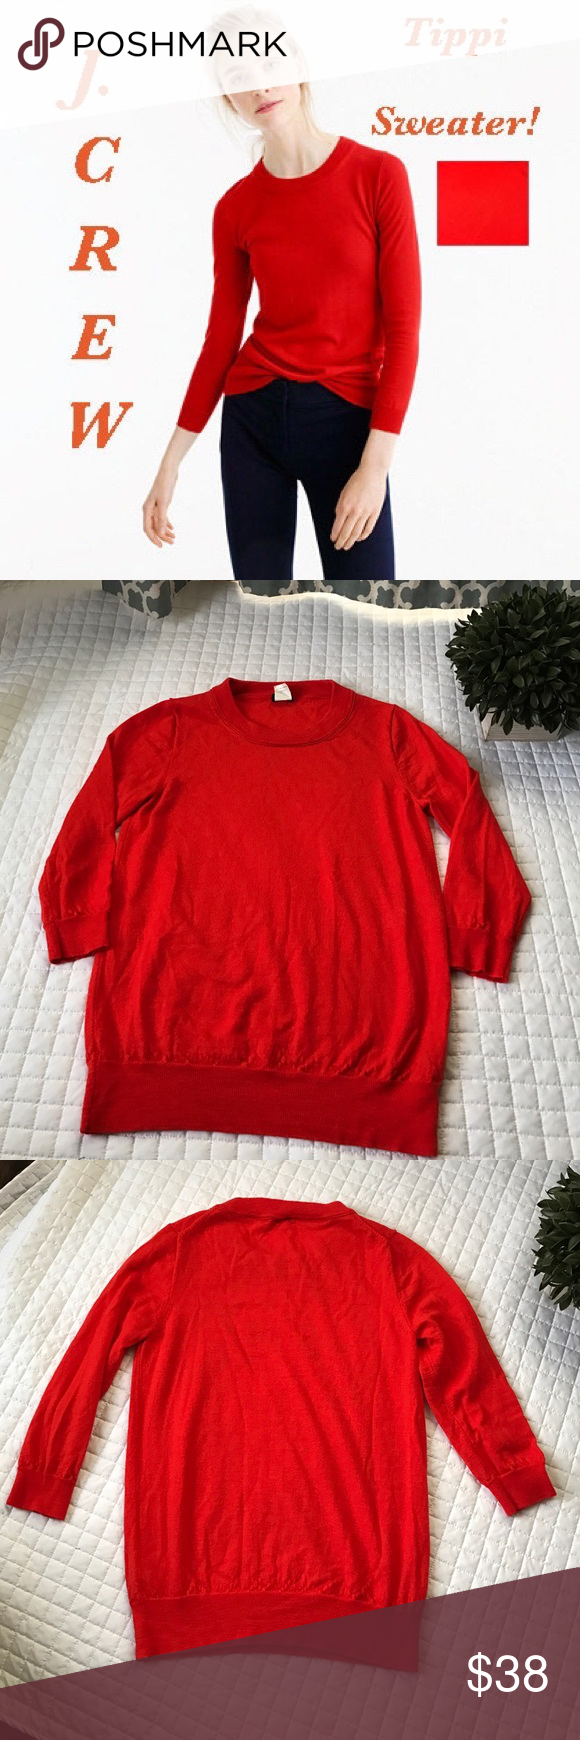 """J. Crew Retail Tippi Neon Flame Sweater Soft and layers well! Gently used, in excellent condition! No stains, holes or rips! Merino Wool. Rib trim at neck, cuffs and hem. Hard to show the color in photos, it's more orange than red. Hand wash. Lying flat it measures 23"""" in total length 15.5"""" across and the sleeves are 3/4 sleeves that measure 17"""". All of my items come from a clean smoke-free home! Please let me know if you have any questions and check my closet! Save when you bundle!! J. Crew…"""